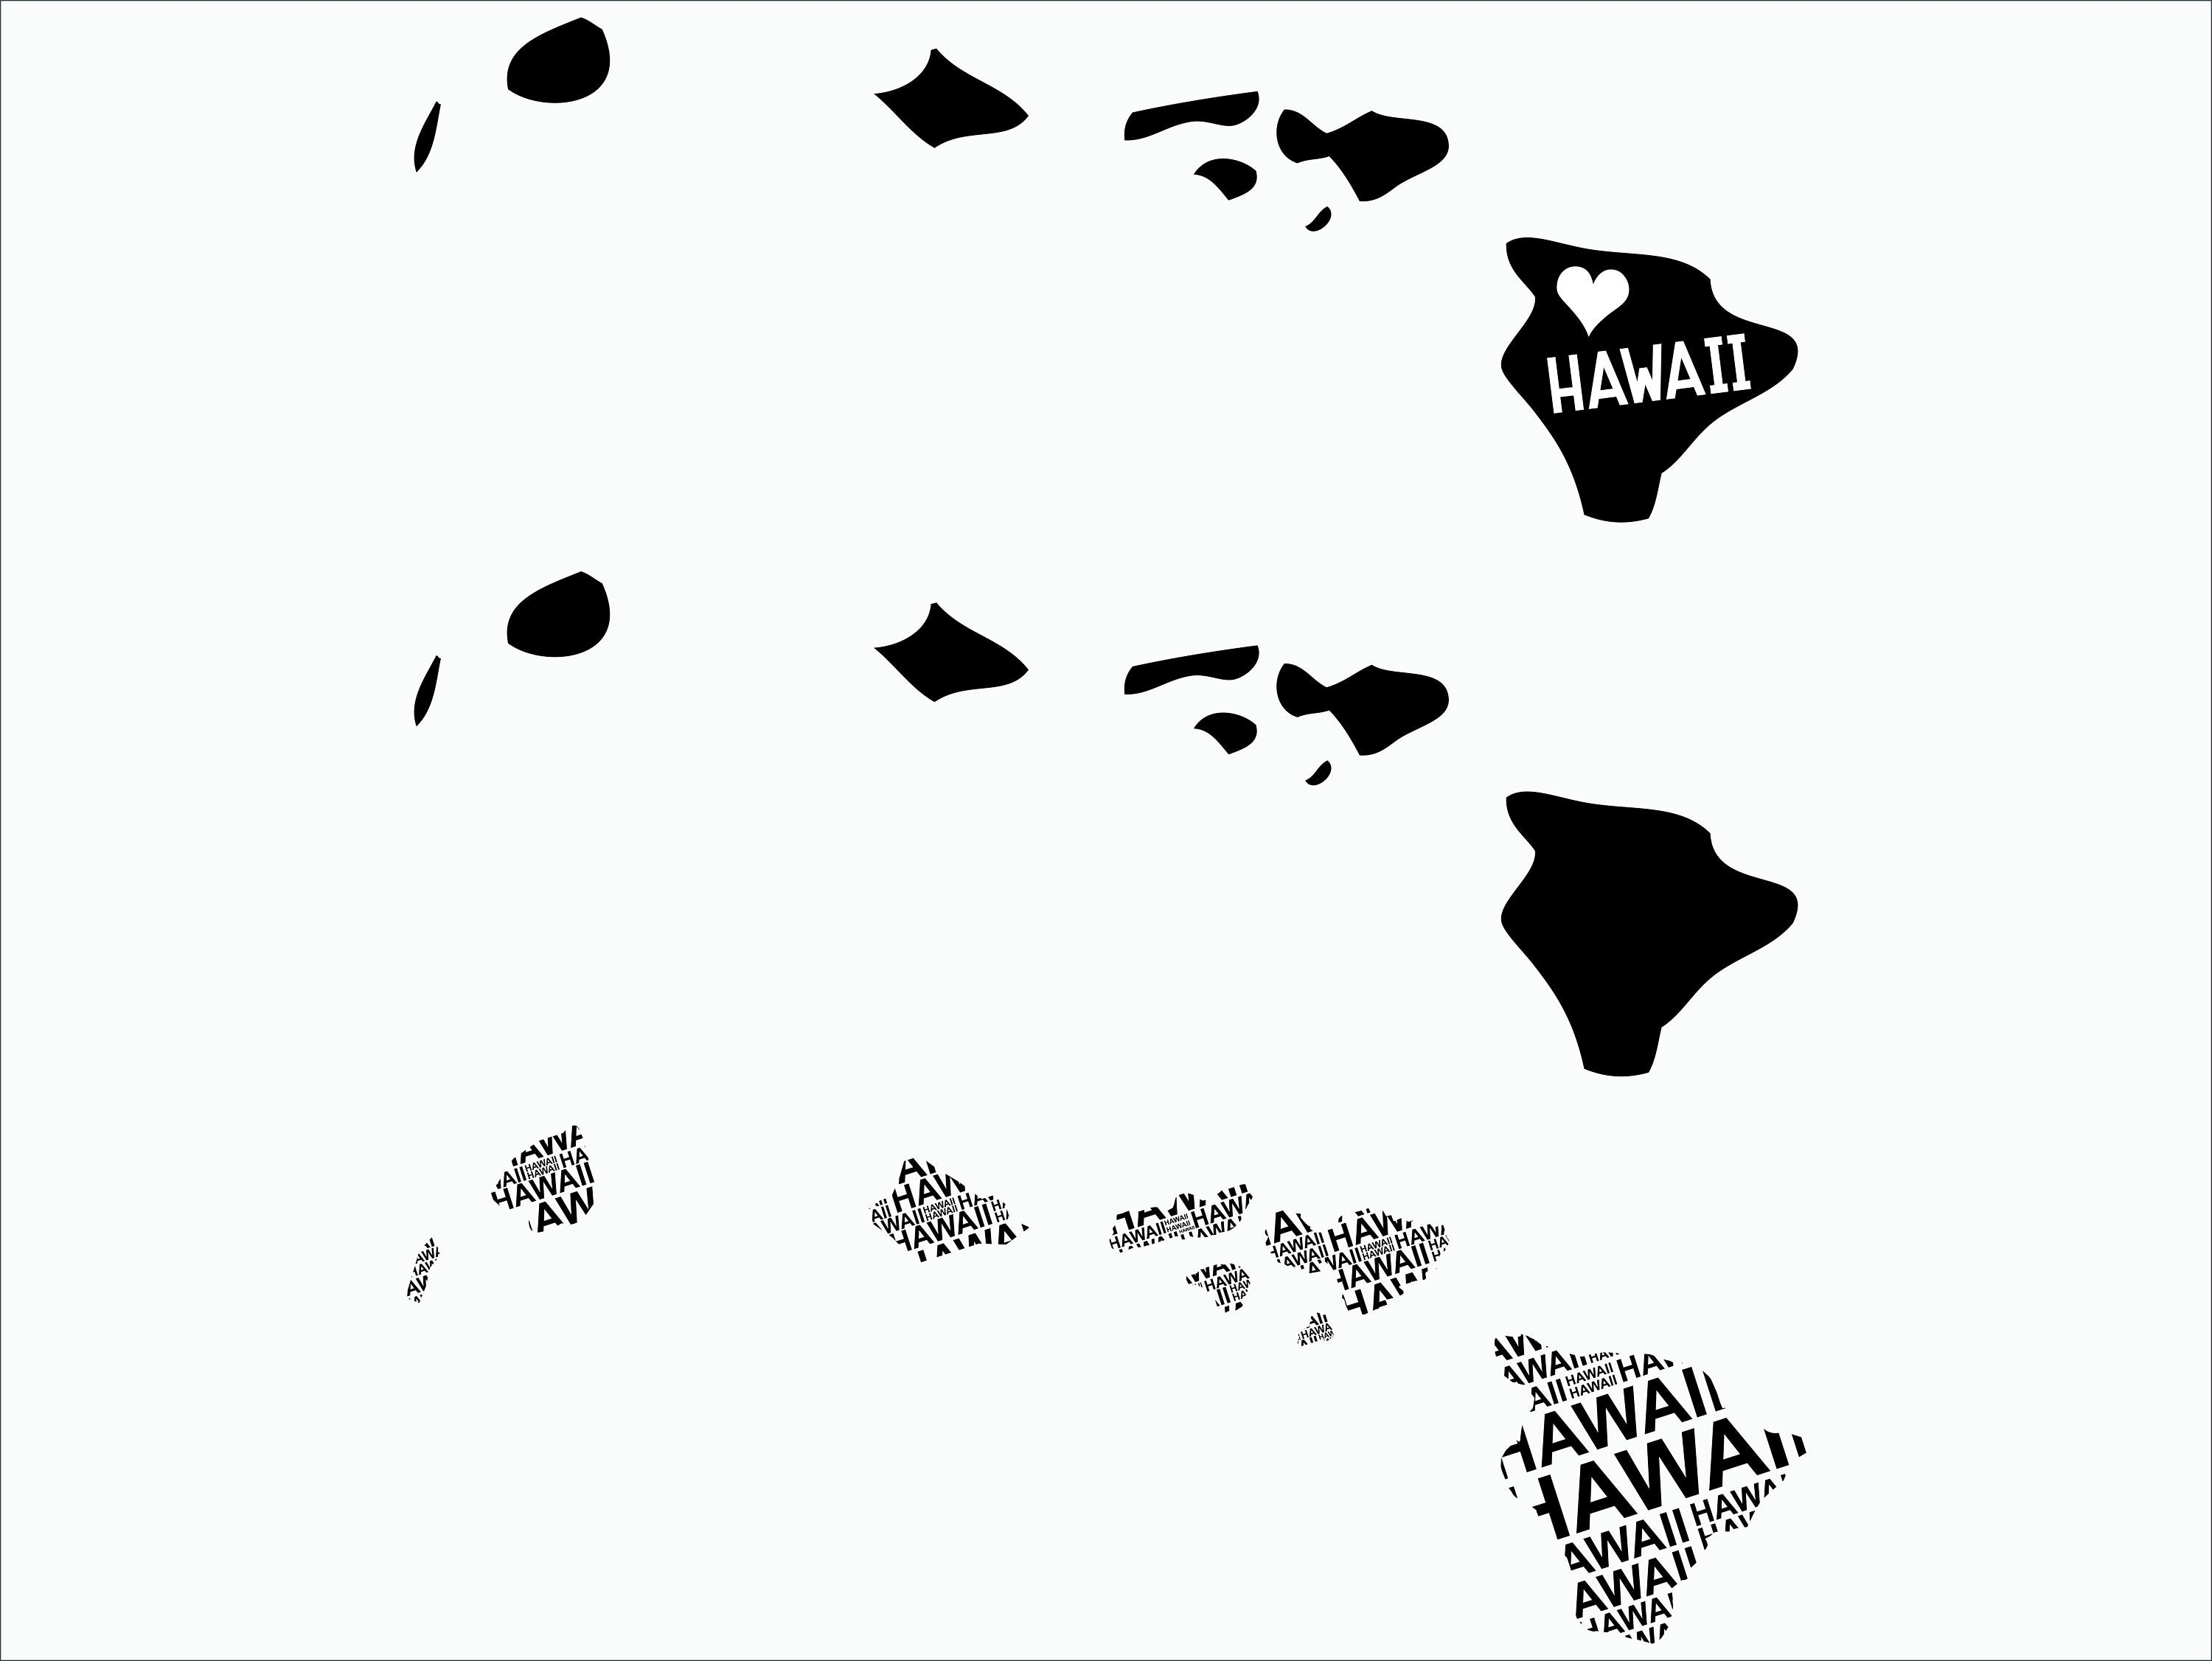 Hawaii SVG/ Hawaii clipart/ Hawaii state svg/ Cricut / printable /  silhouette / vinyl decal / vector files for cutting machines.